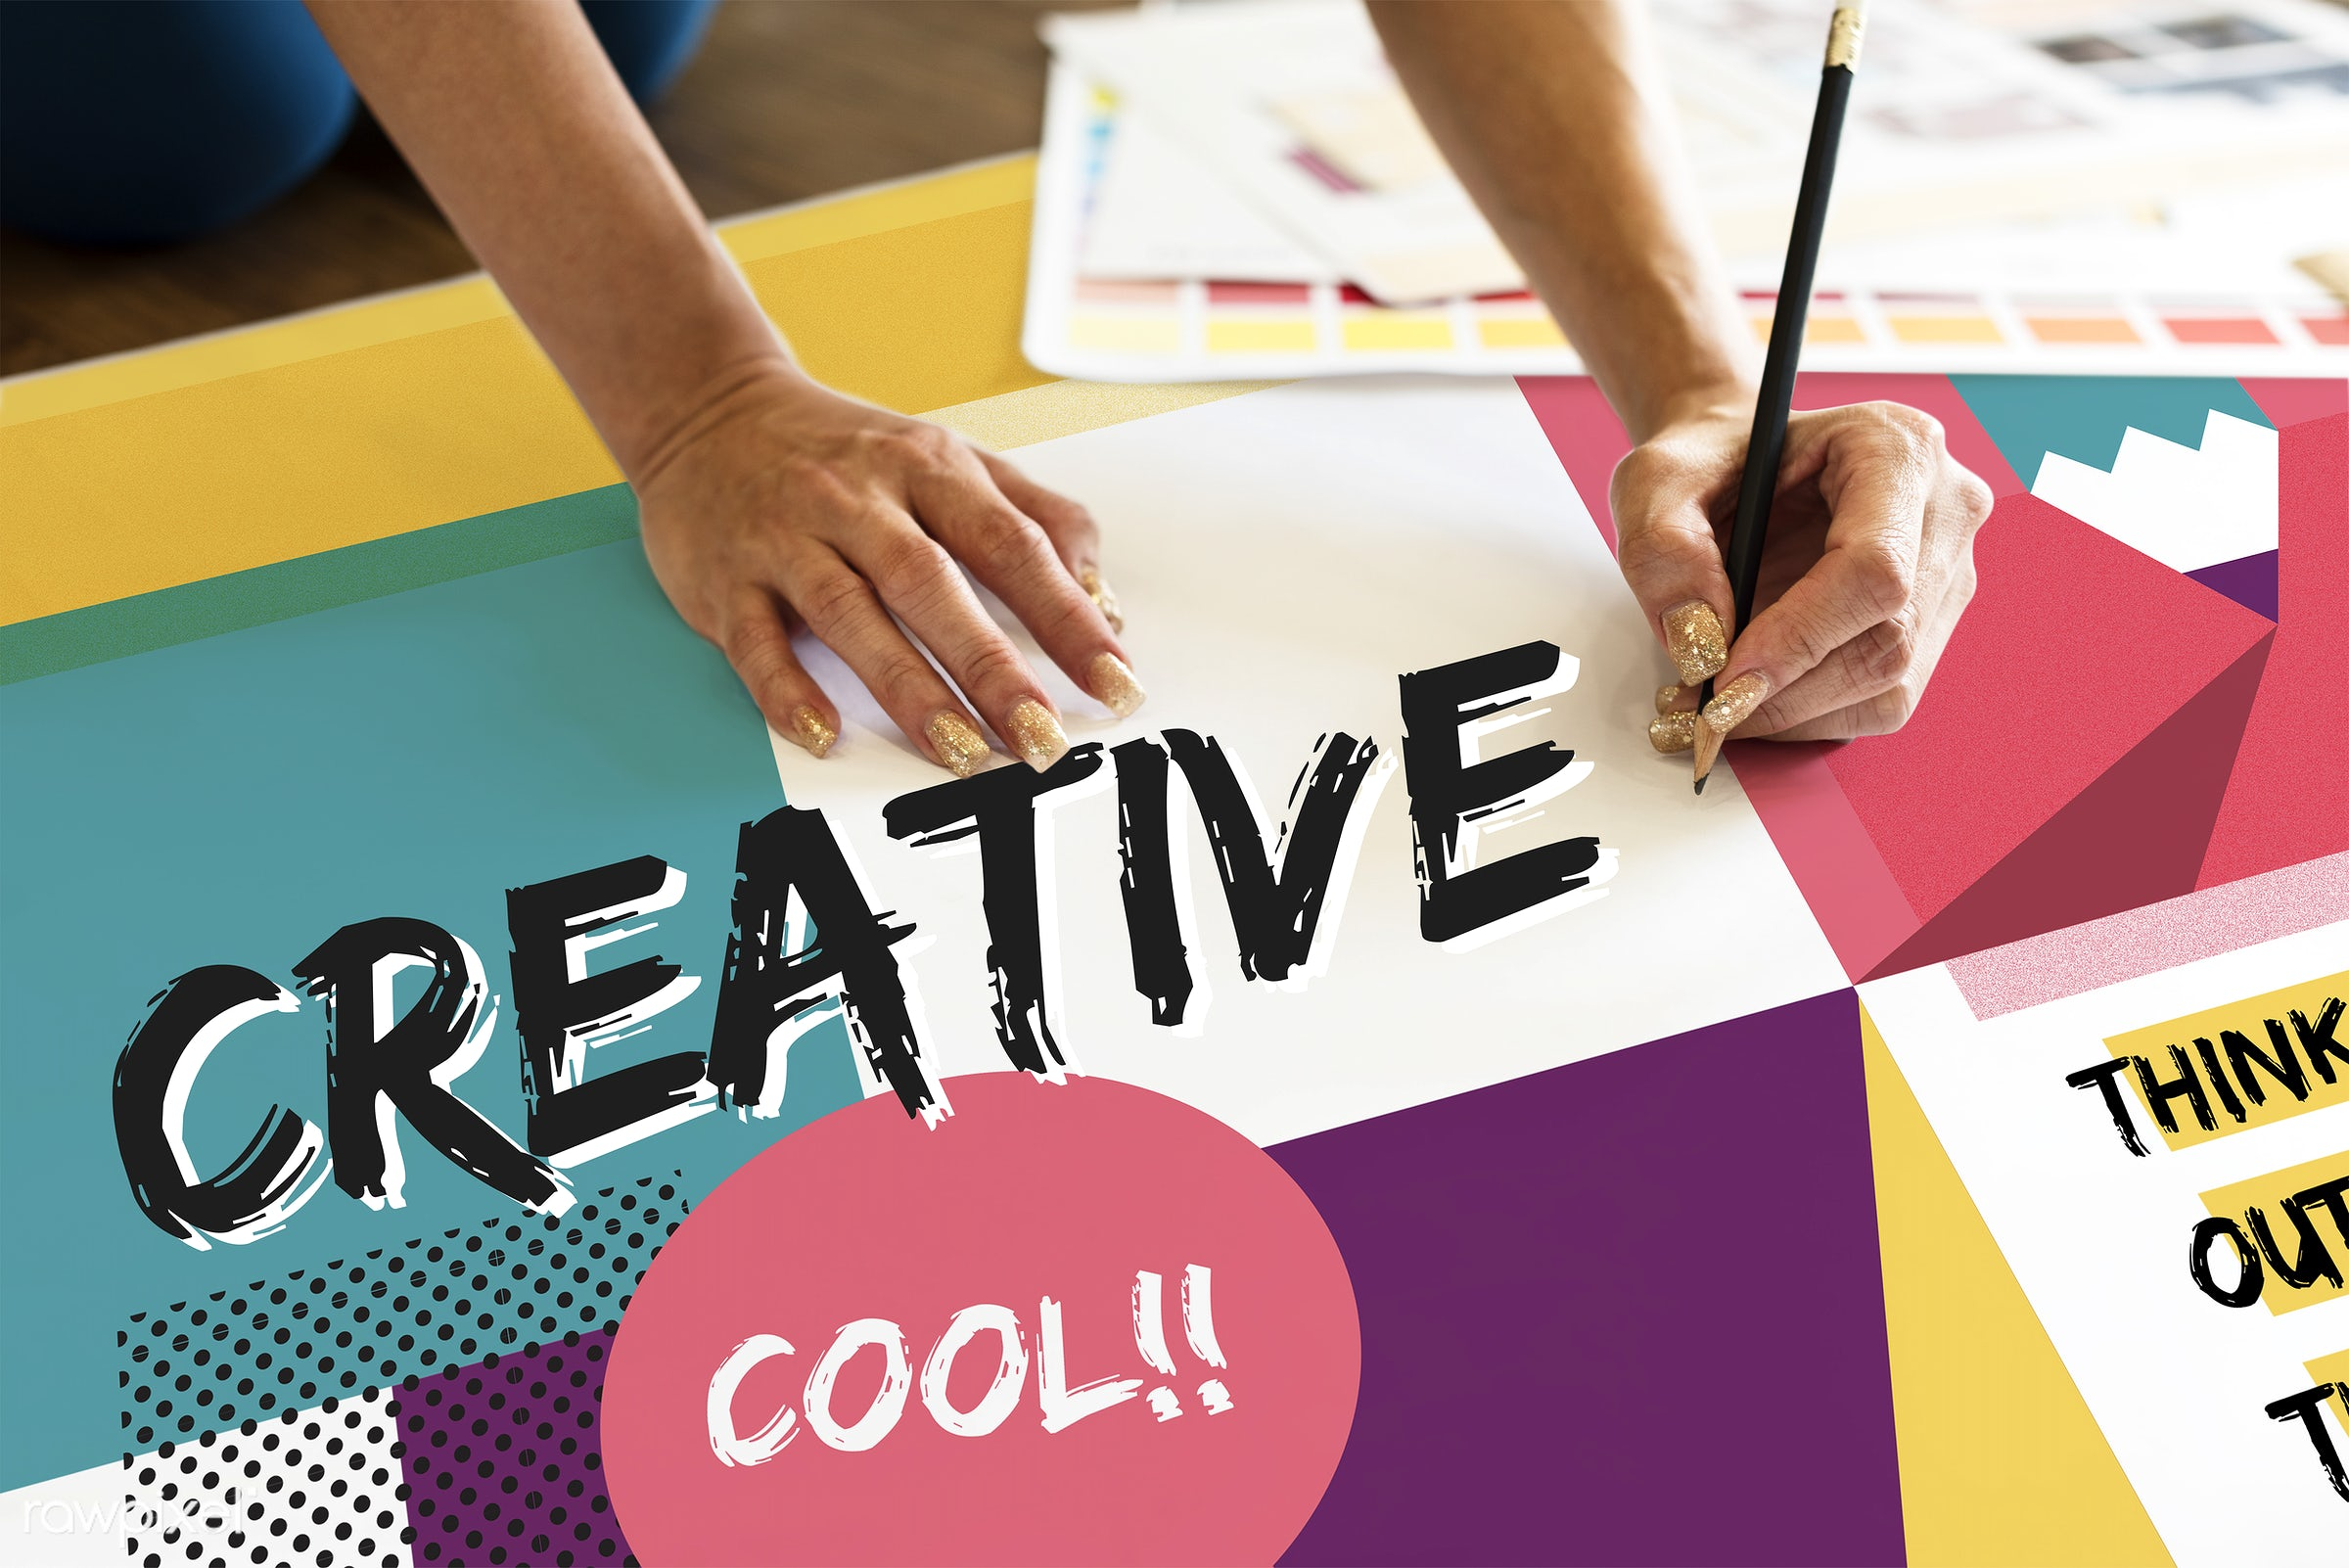 art, creation, creative, creativity, design, drawing, hands, ideas, inspiration, inspire, paper, pencil, people, person,...